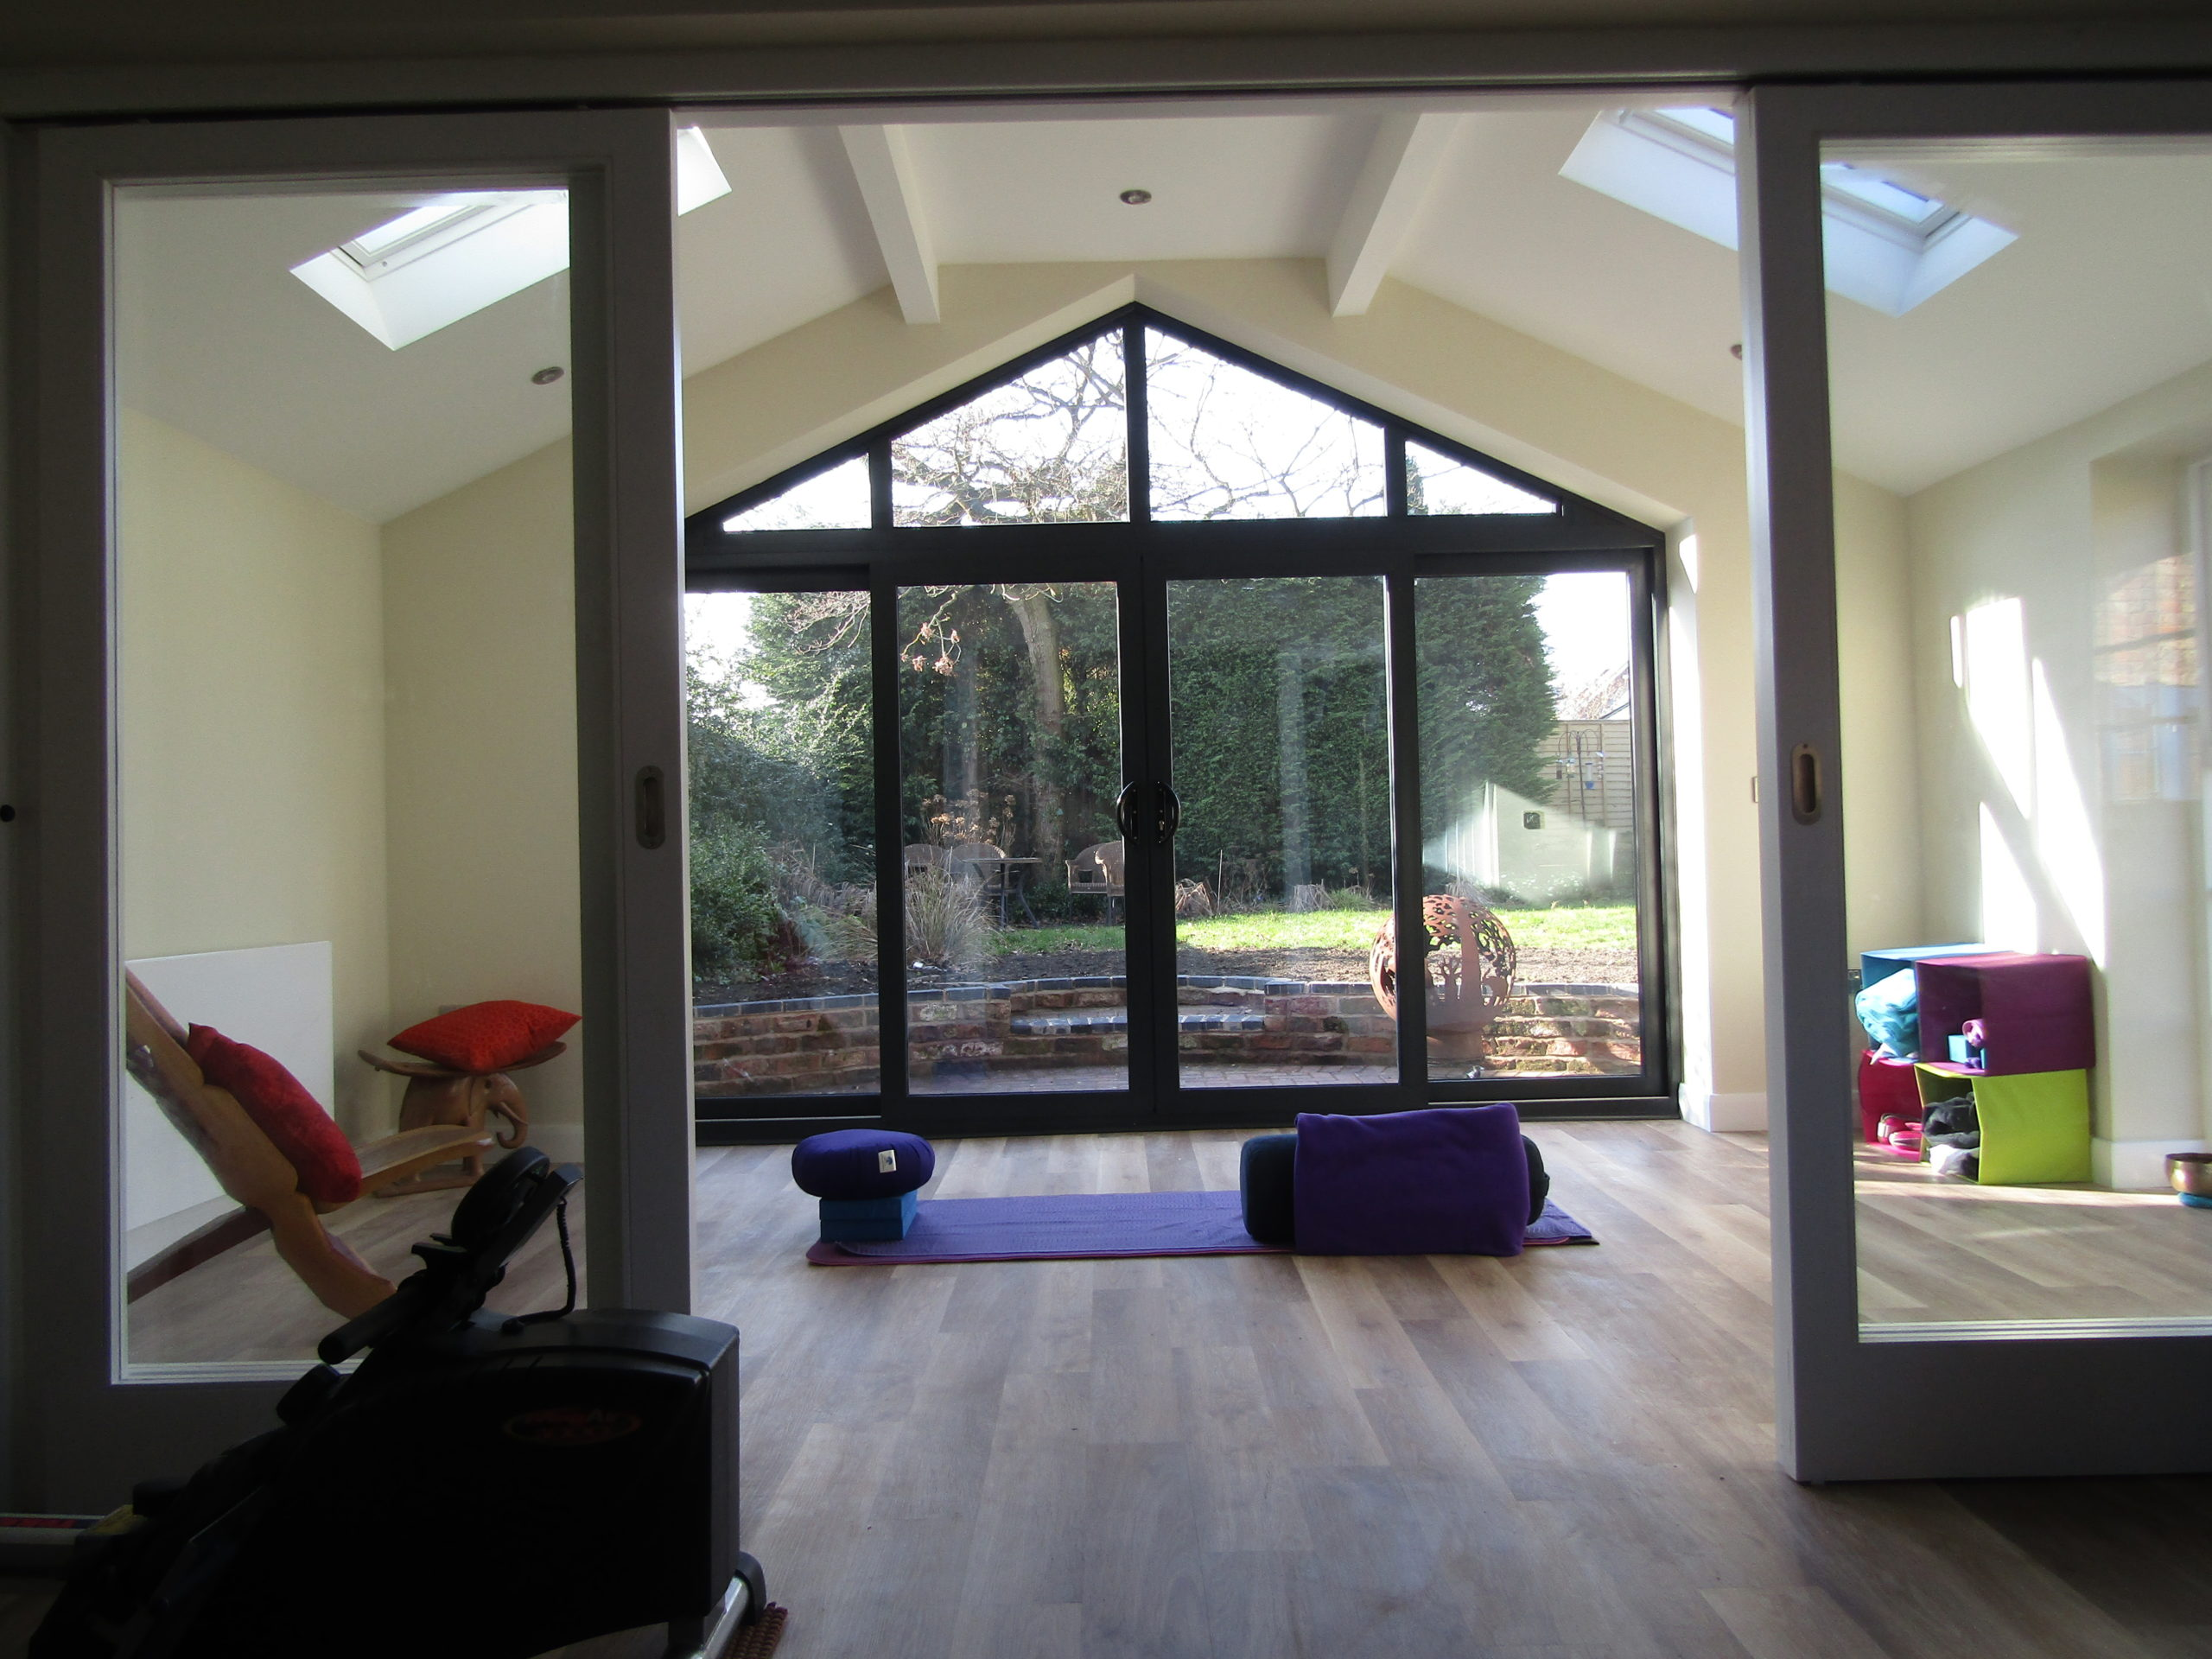 Spacious fitness centred garage conversion room.